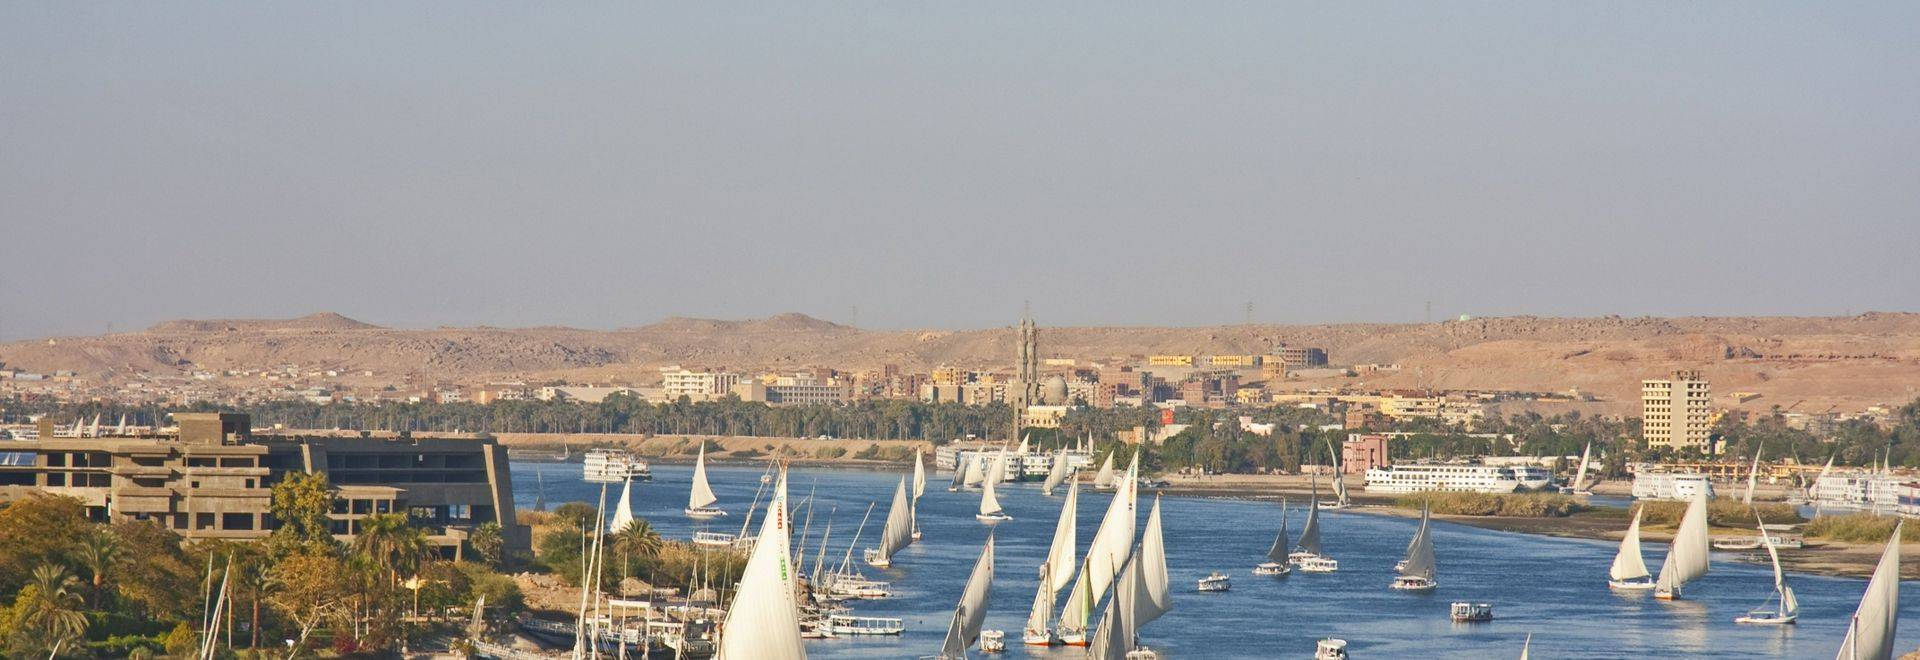 The Nile River and felucca sailing boats.